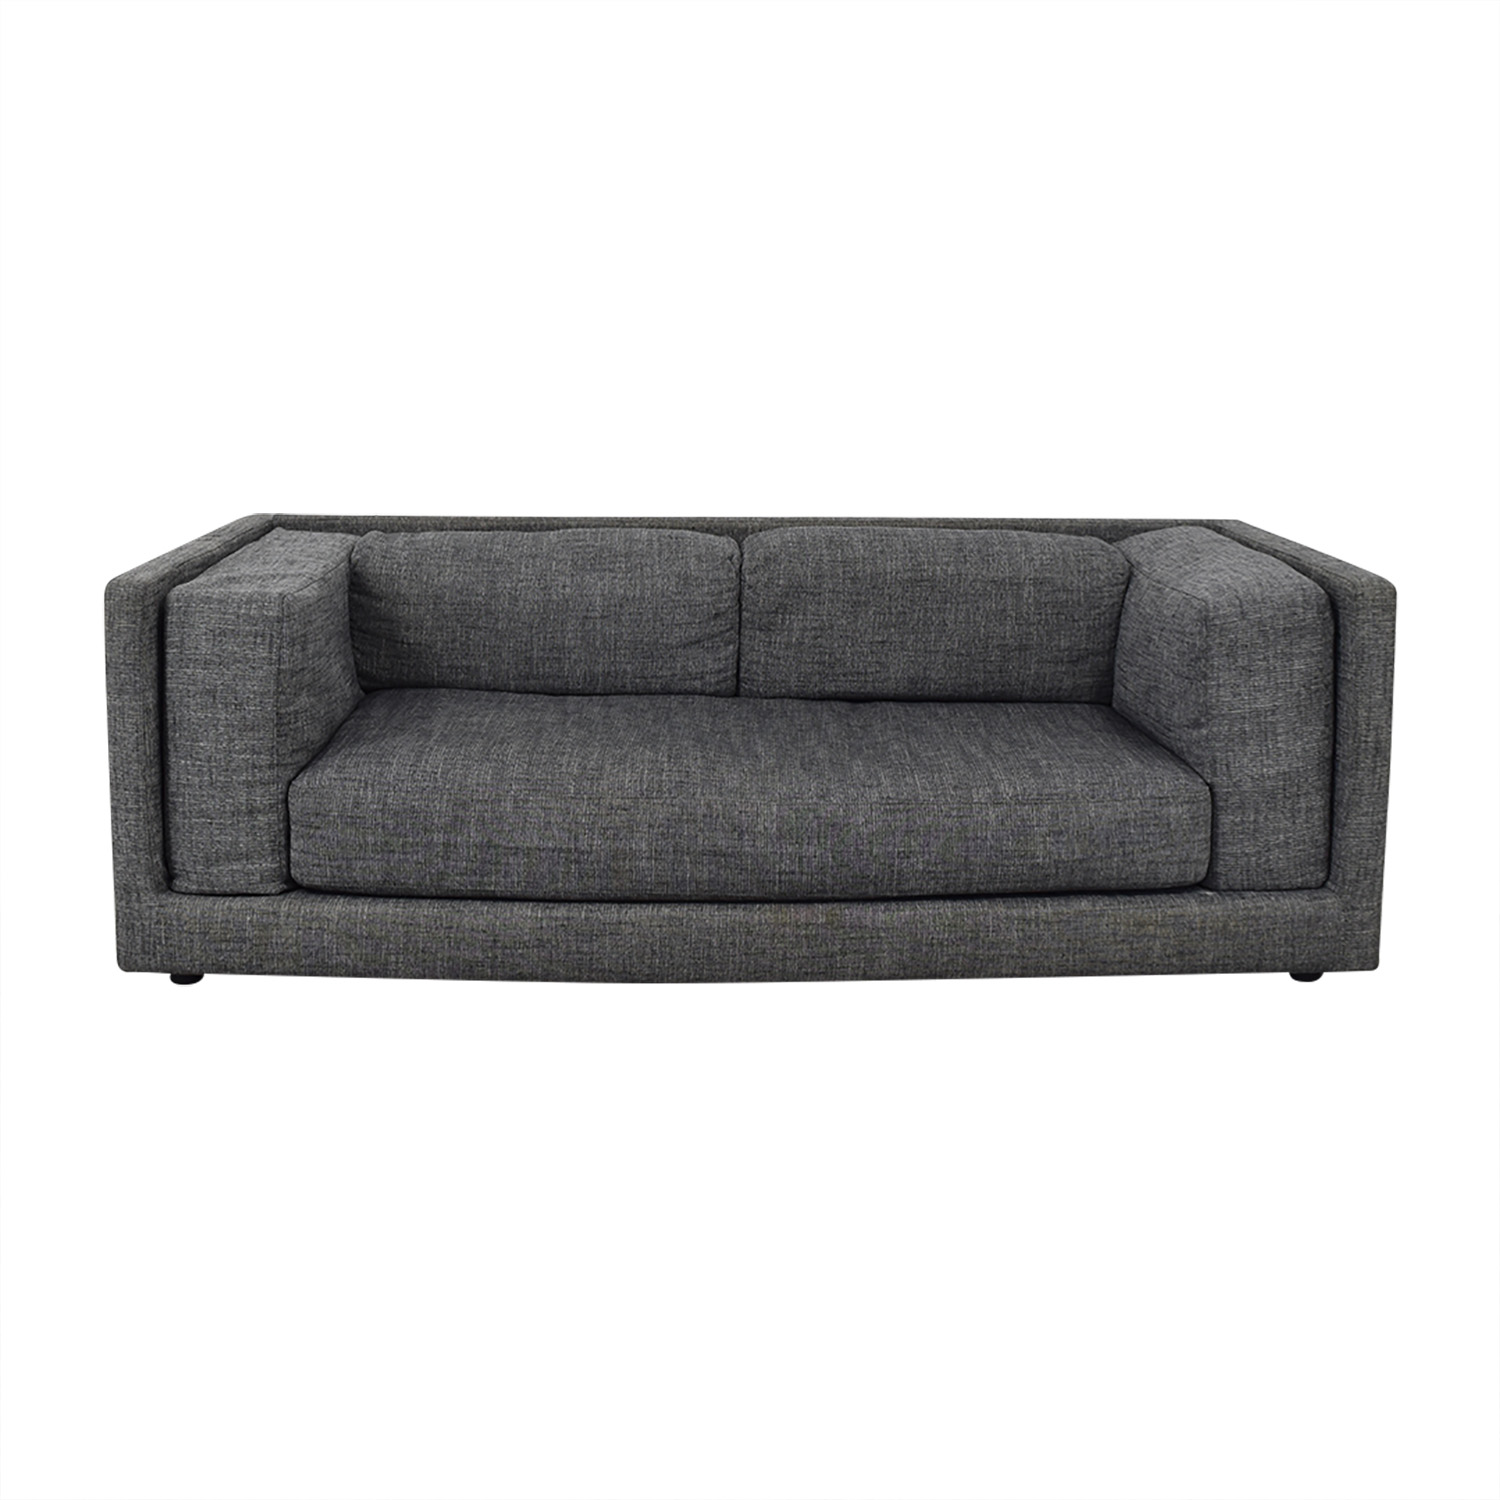 CB2 CB2 Ultra-Low Tuxedo Sofa on sale